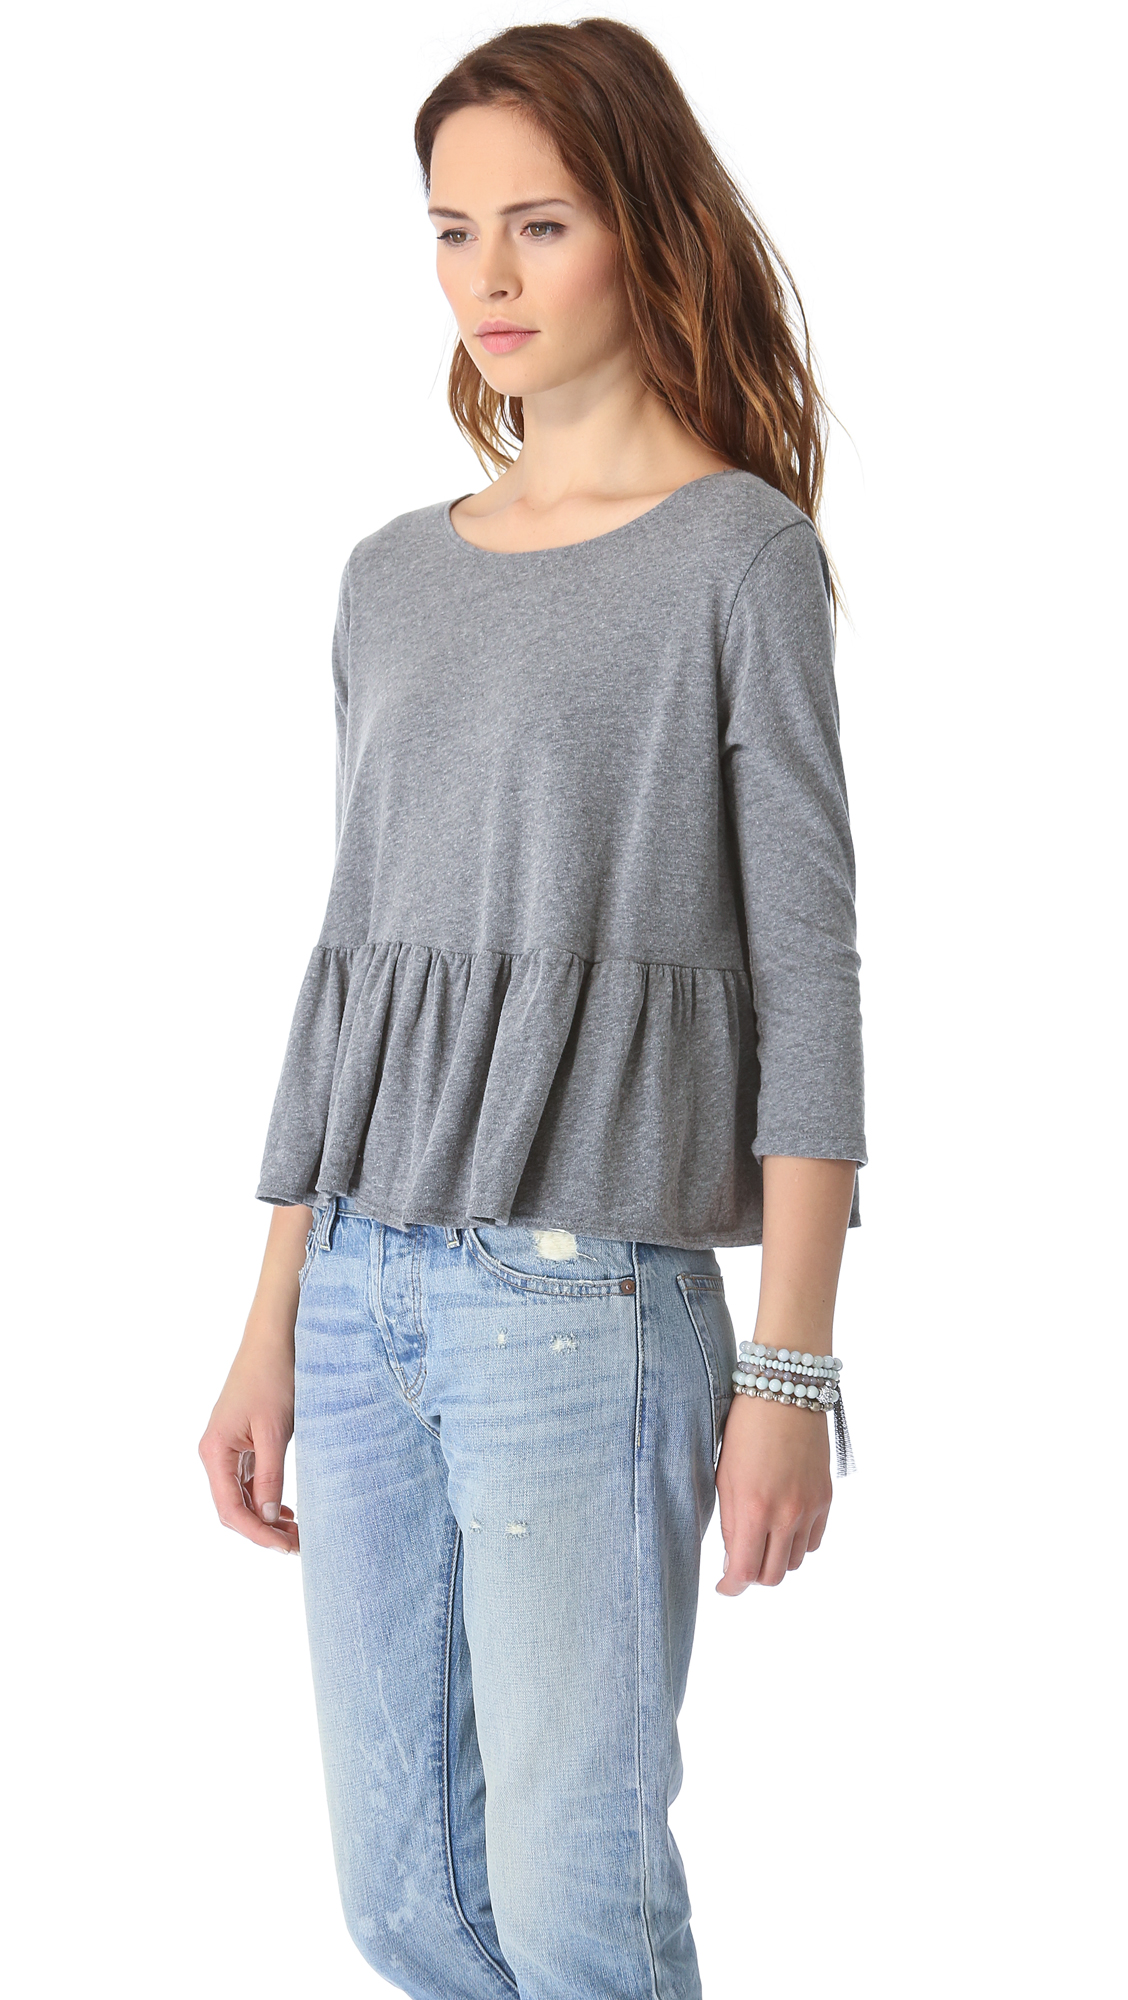 Buy Pinwheel Women Grey Checked Peplum Top - Tops for Women from Pinwheel at Rs. Style ID: